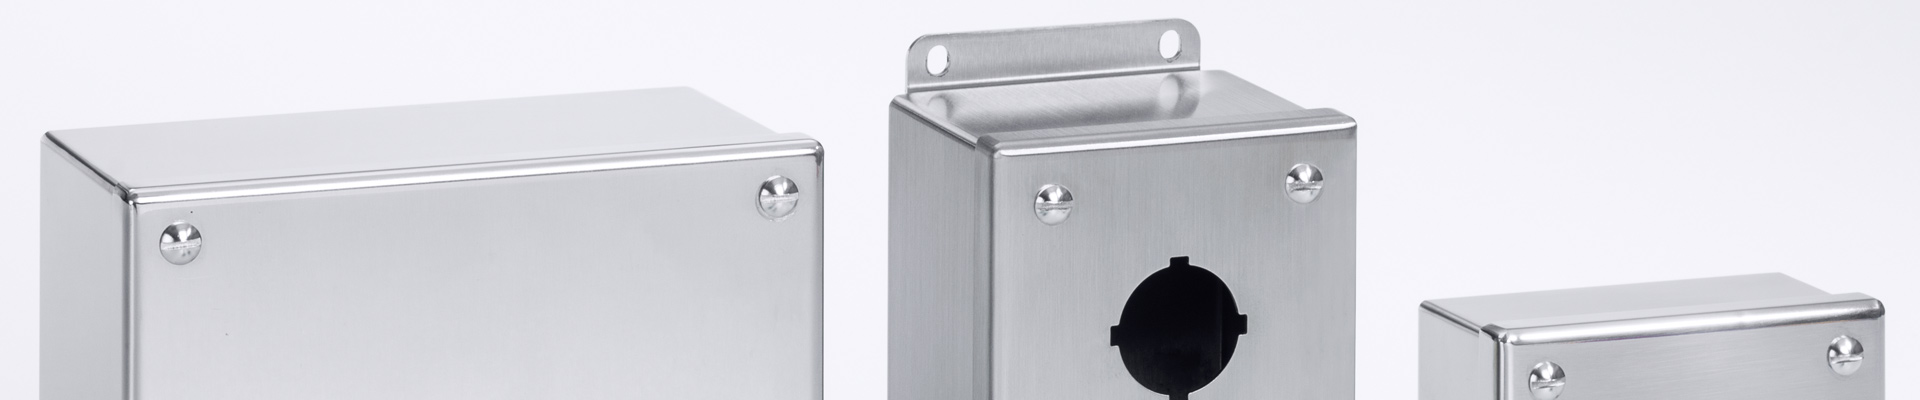 Stainless Steel Traditional Enclosure Accessories